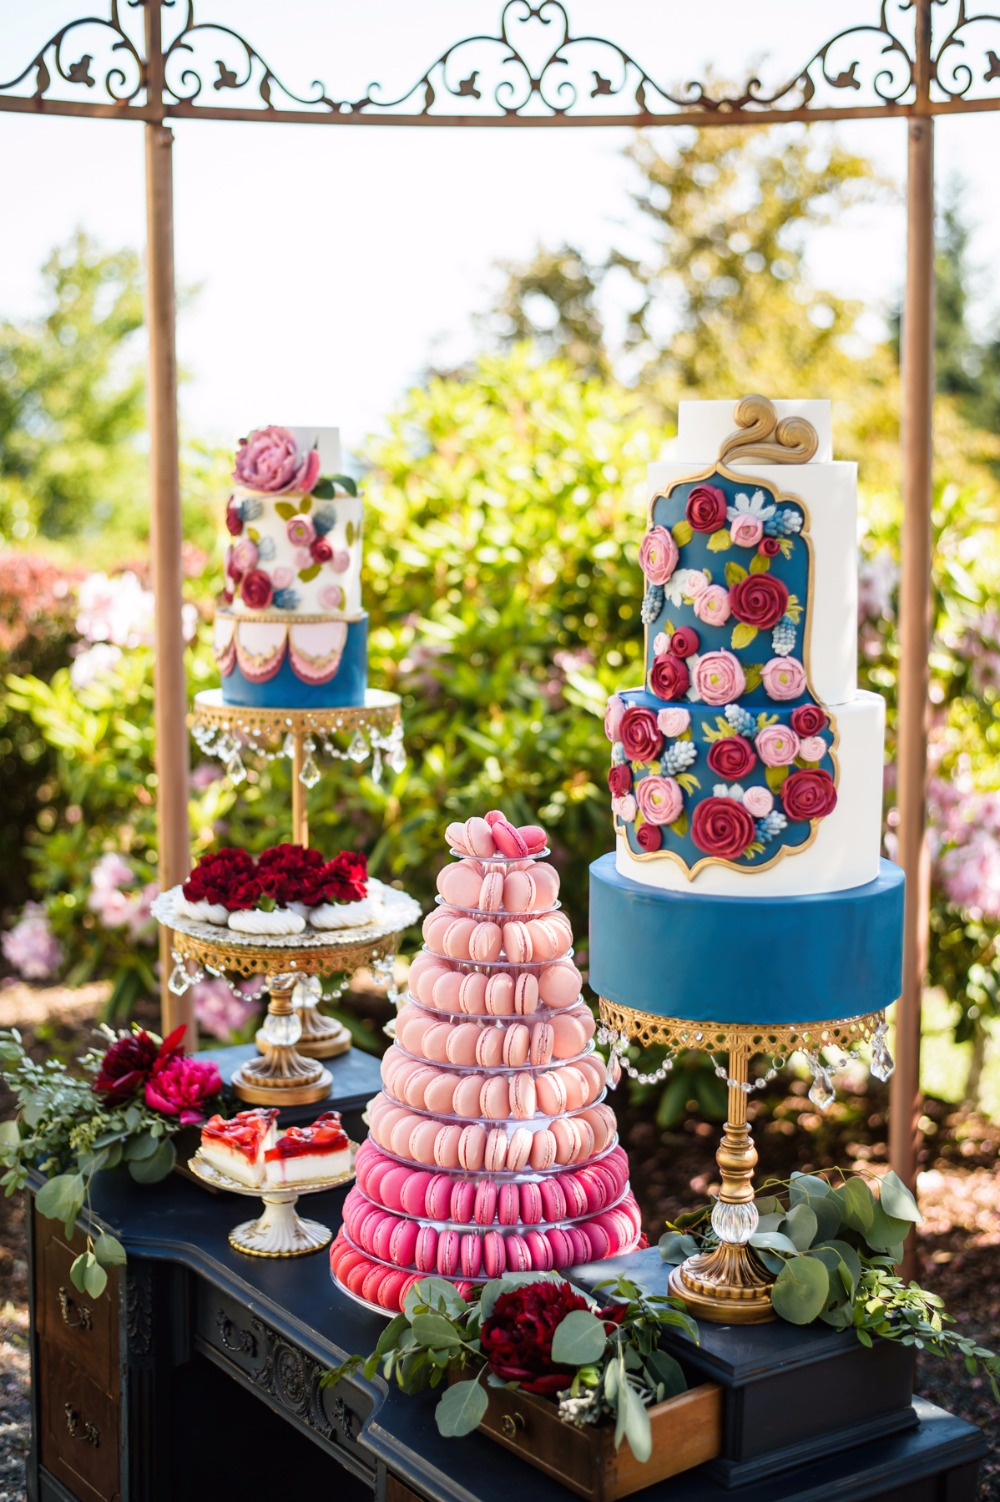 13_a-colorful-over-the-top-wedding-inspired-by-marie-antoinette.jpg